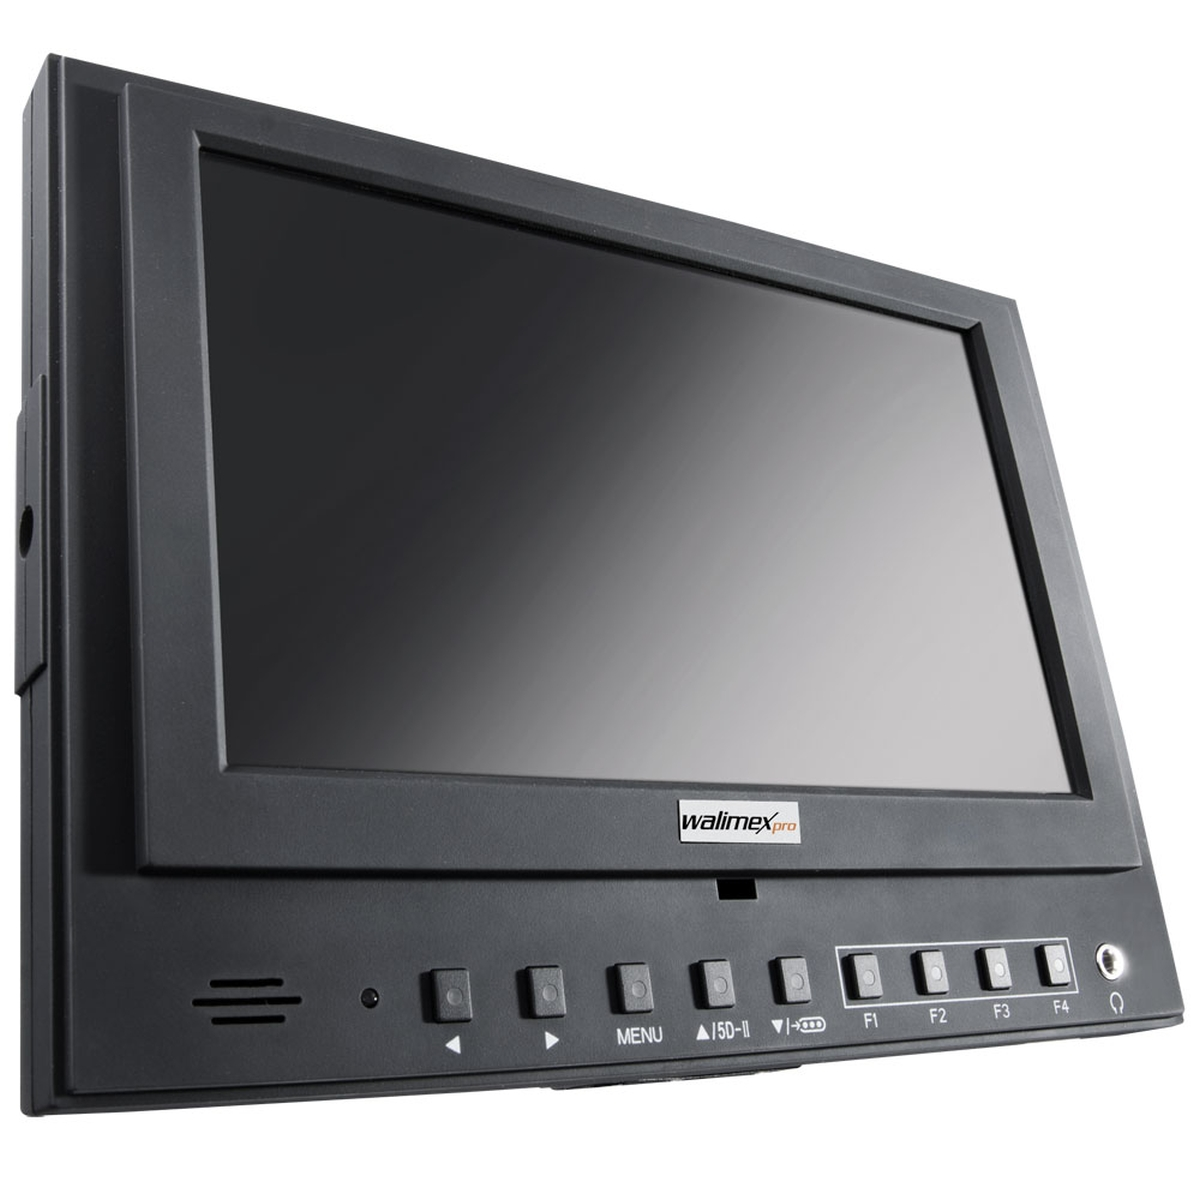 Walimex pro LCD Monitor 17.8 cm Video DSLR